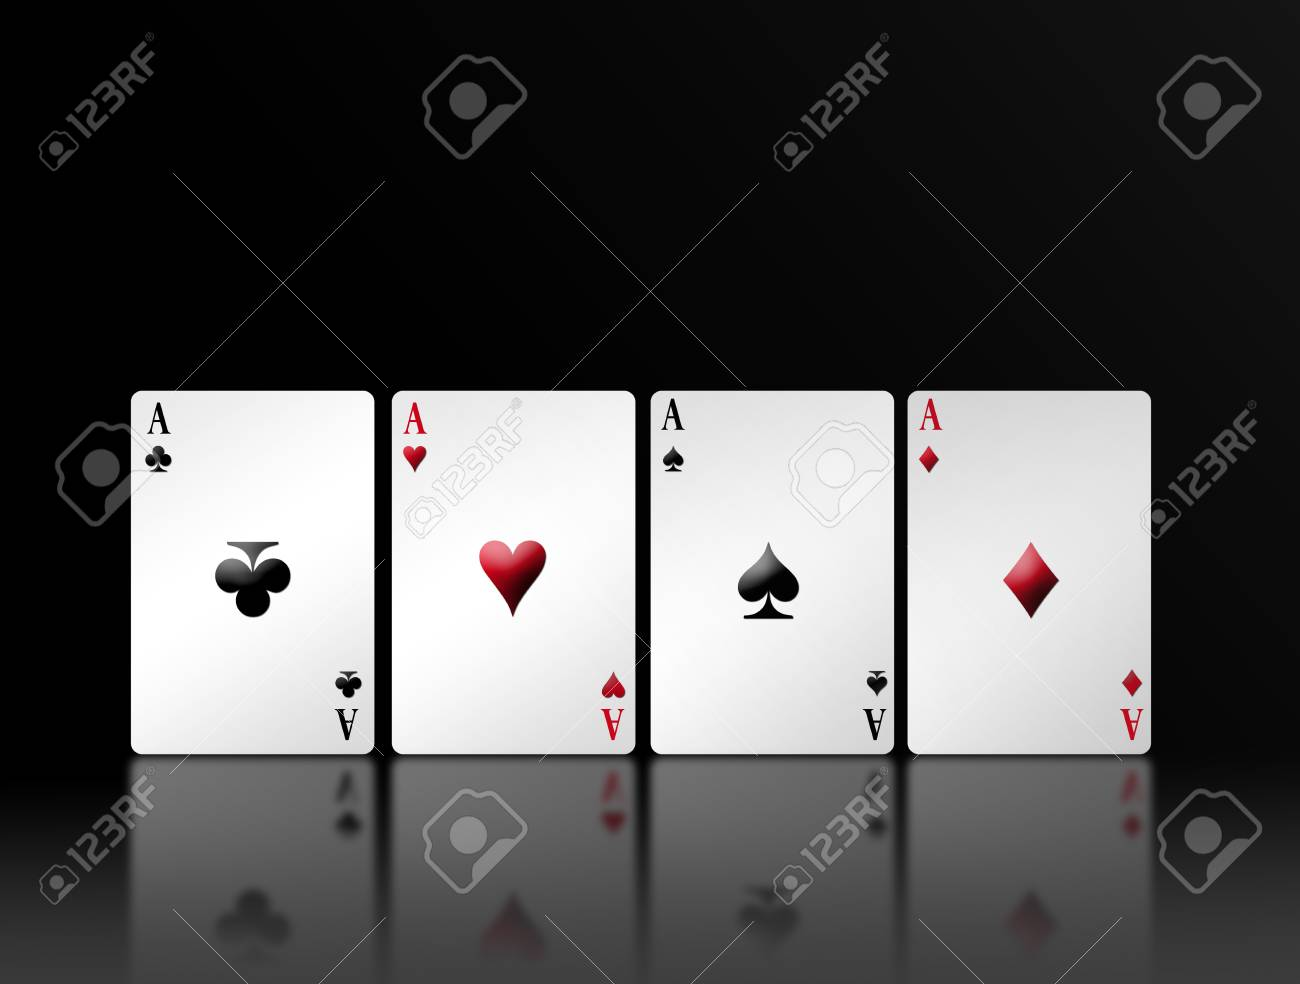 Poker card with shadow and black background. Illustration Stock Illustration - 8912861